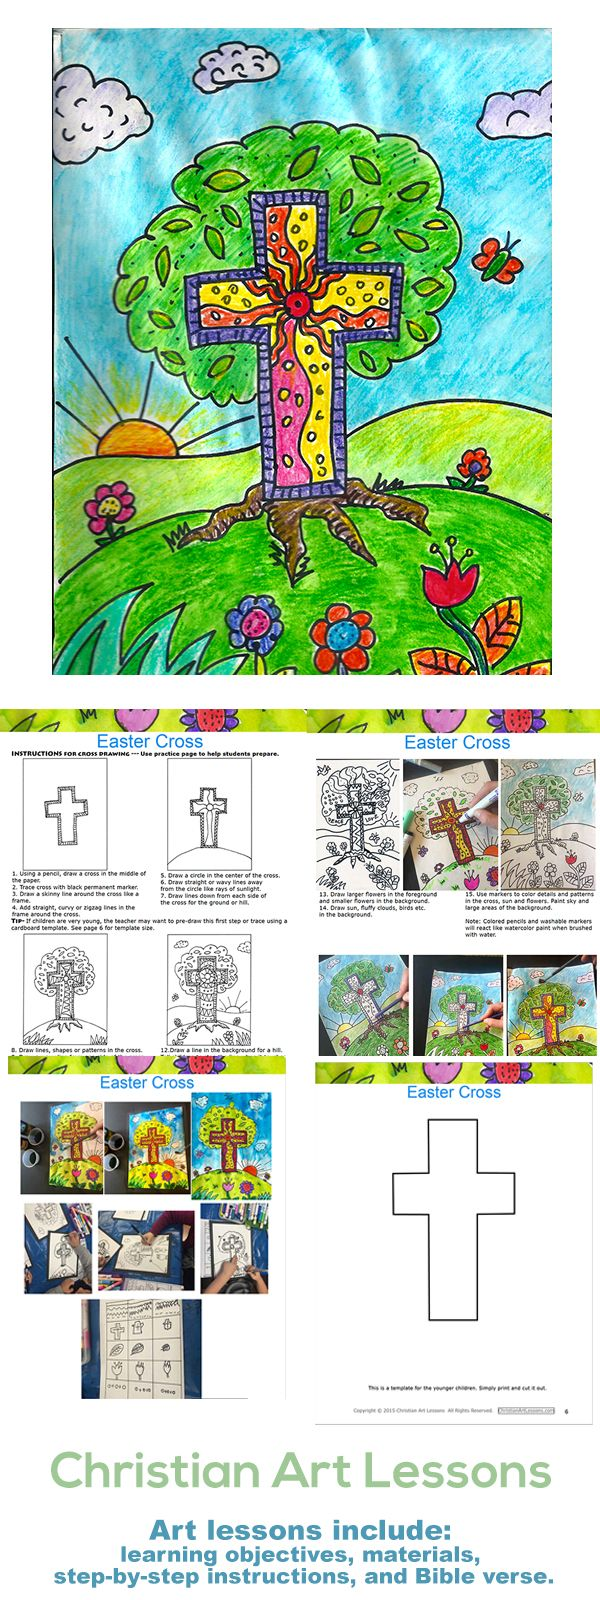 Easter Cross Free Art Lesson Free art lesson for Easter drawing with markers and painting in watercolor for Kindergarten -3rd grade with step-by-step instructions. http://www.christianartlessons.com